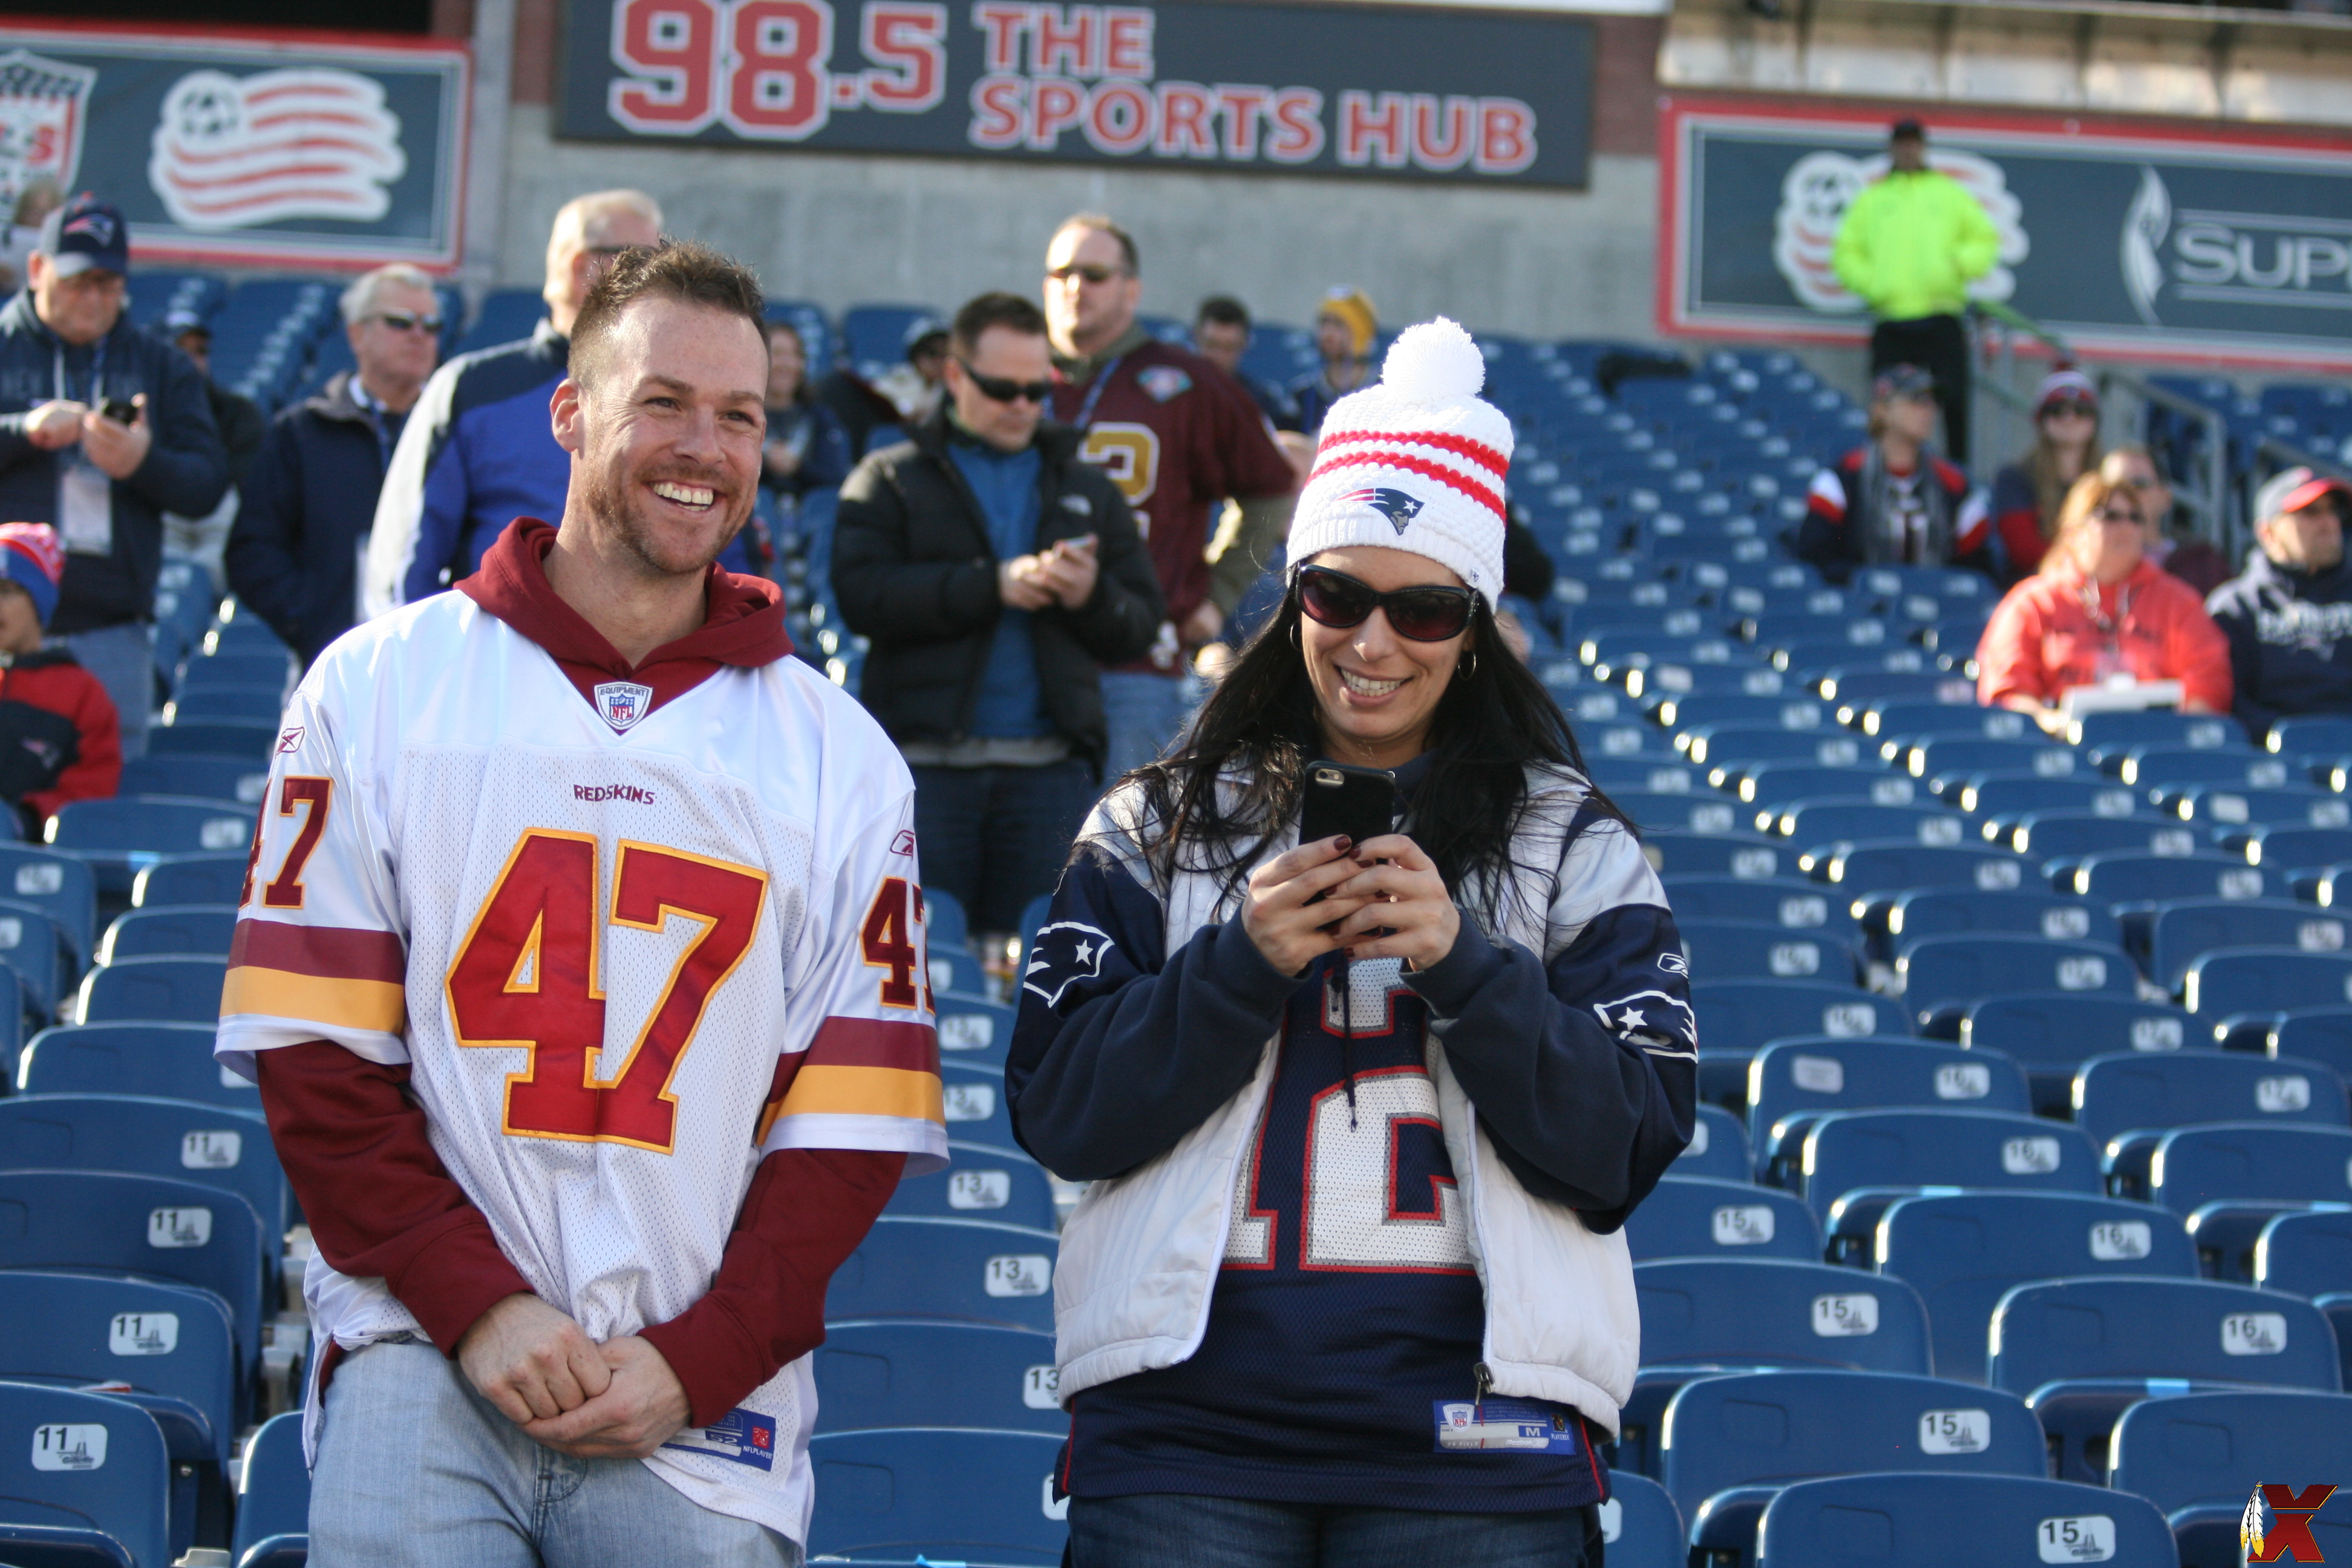 week-9-2015-redskins-at-patriots_22863849006_o.jpg